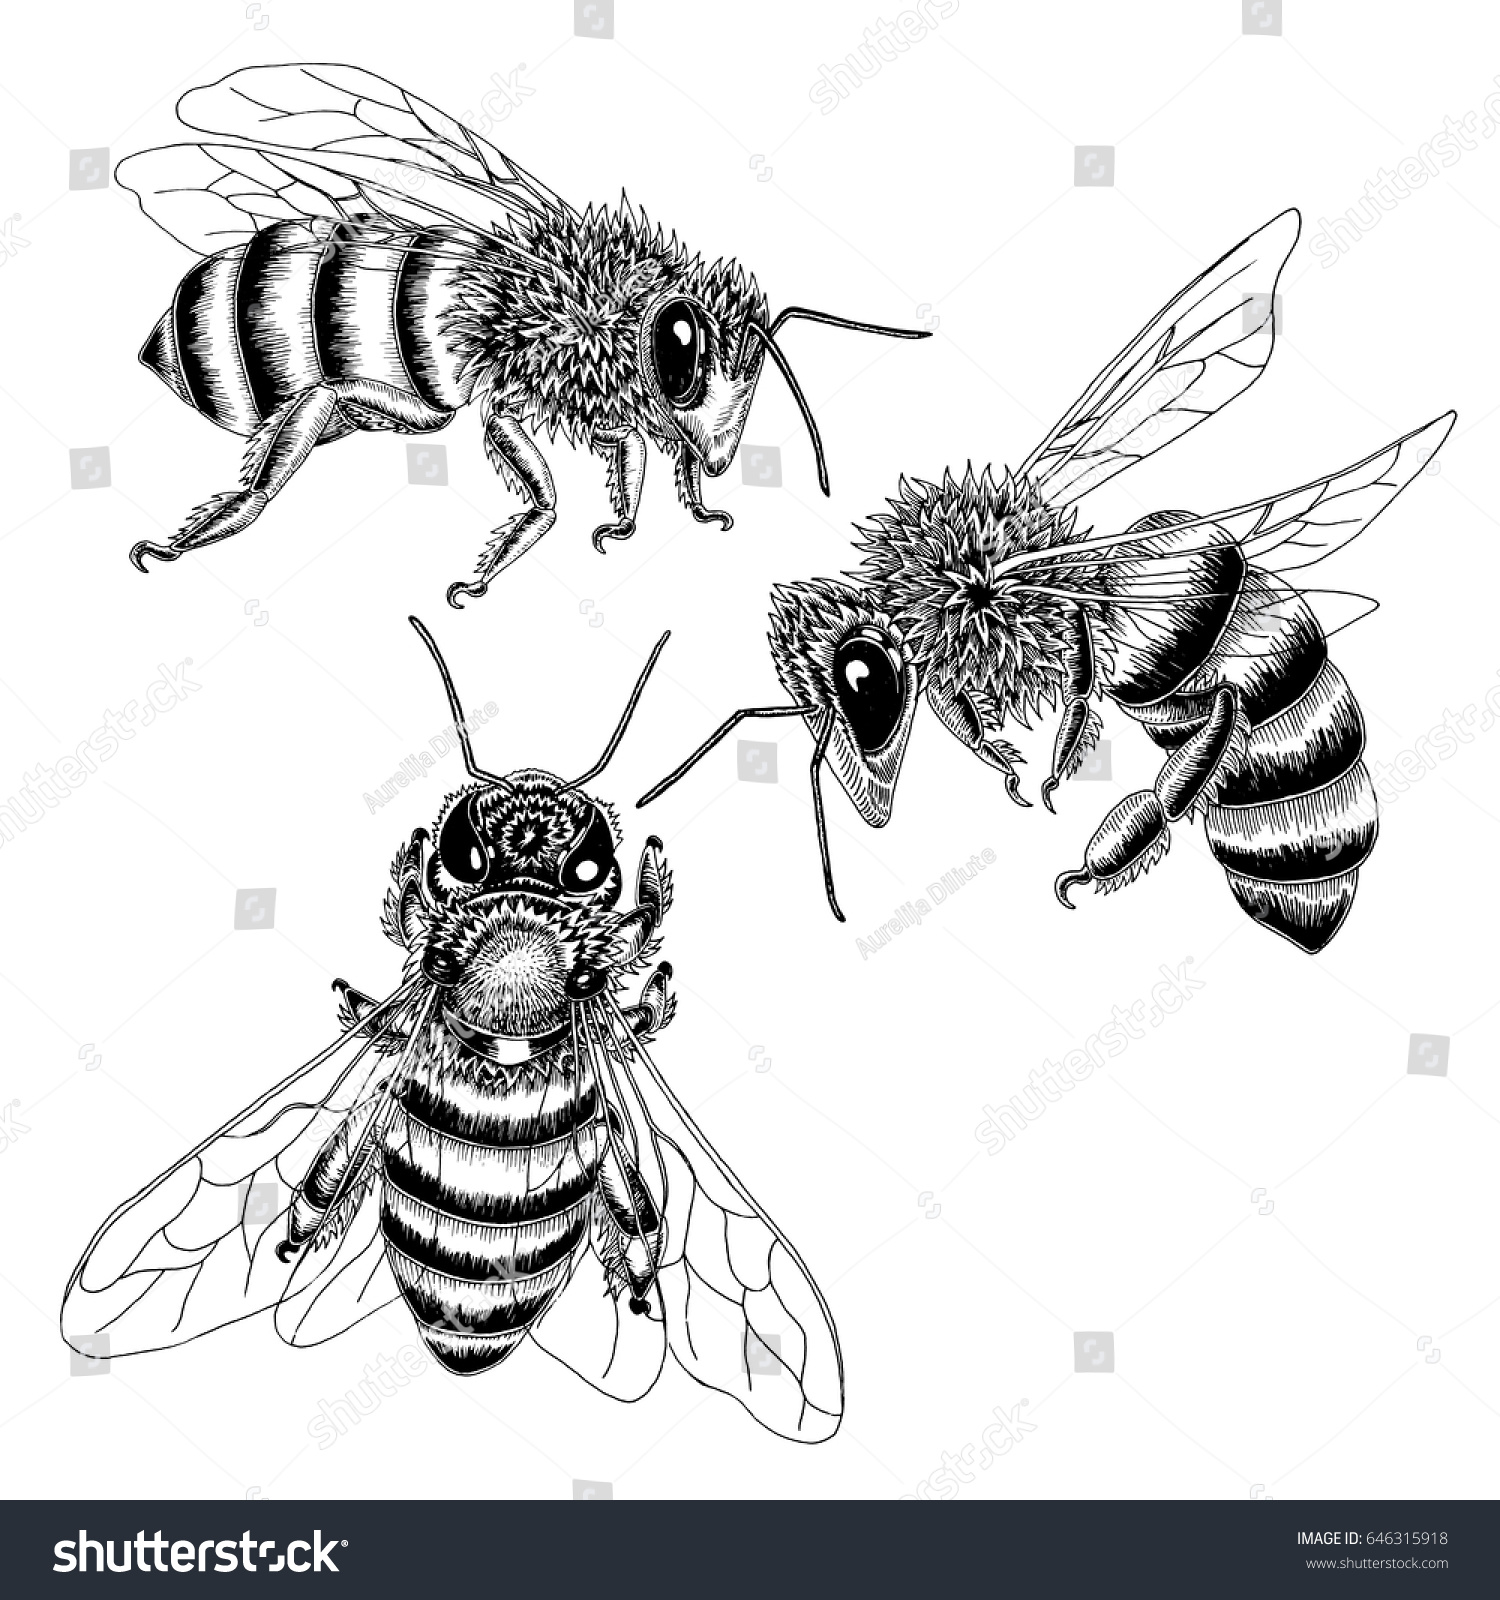 Hand Drawn Bees Sketch Set In Black And White Vector Illustration Of Three From